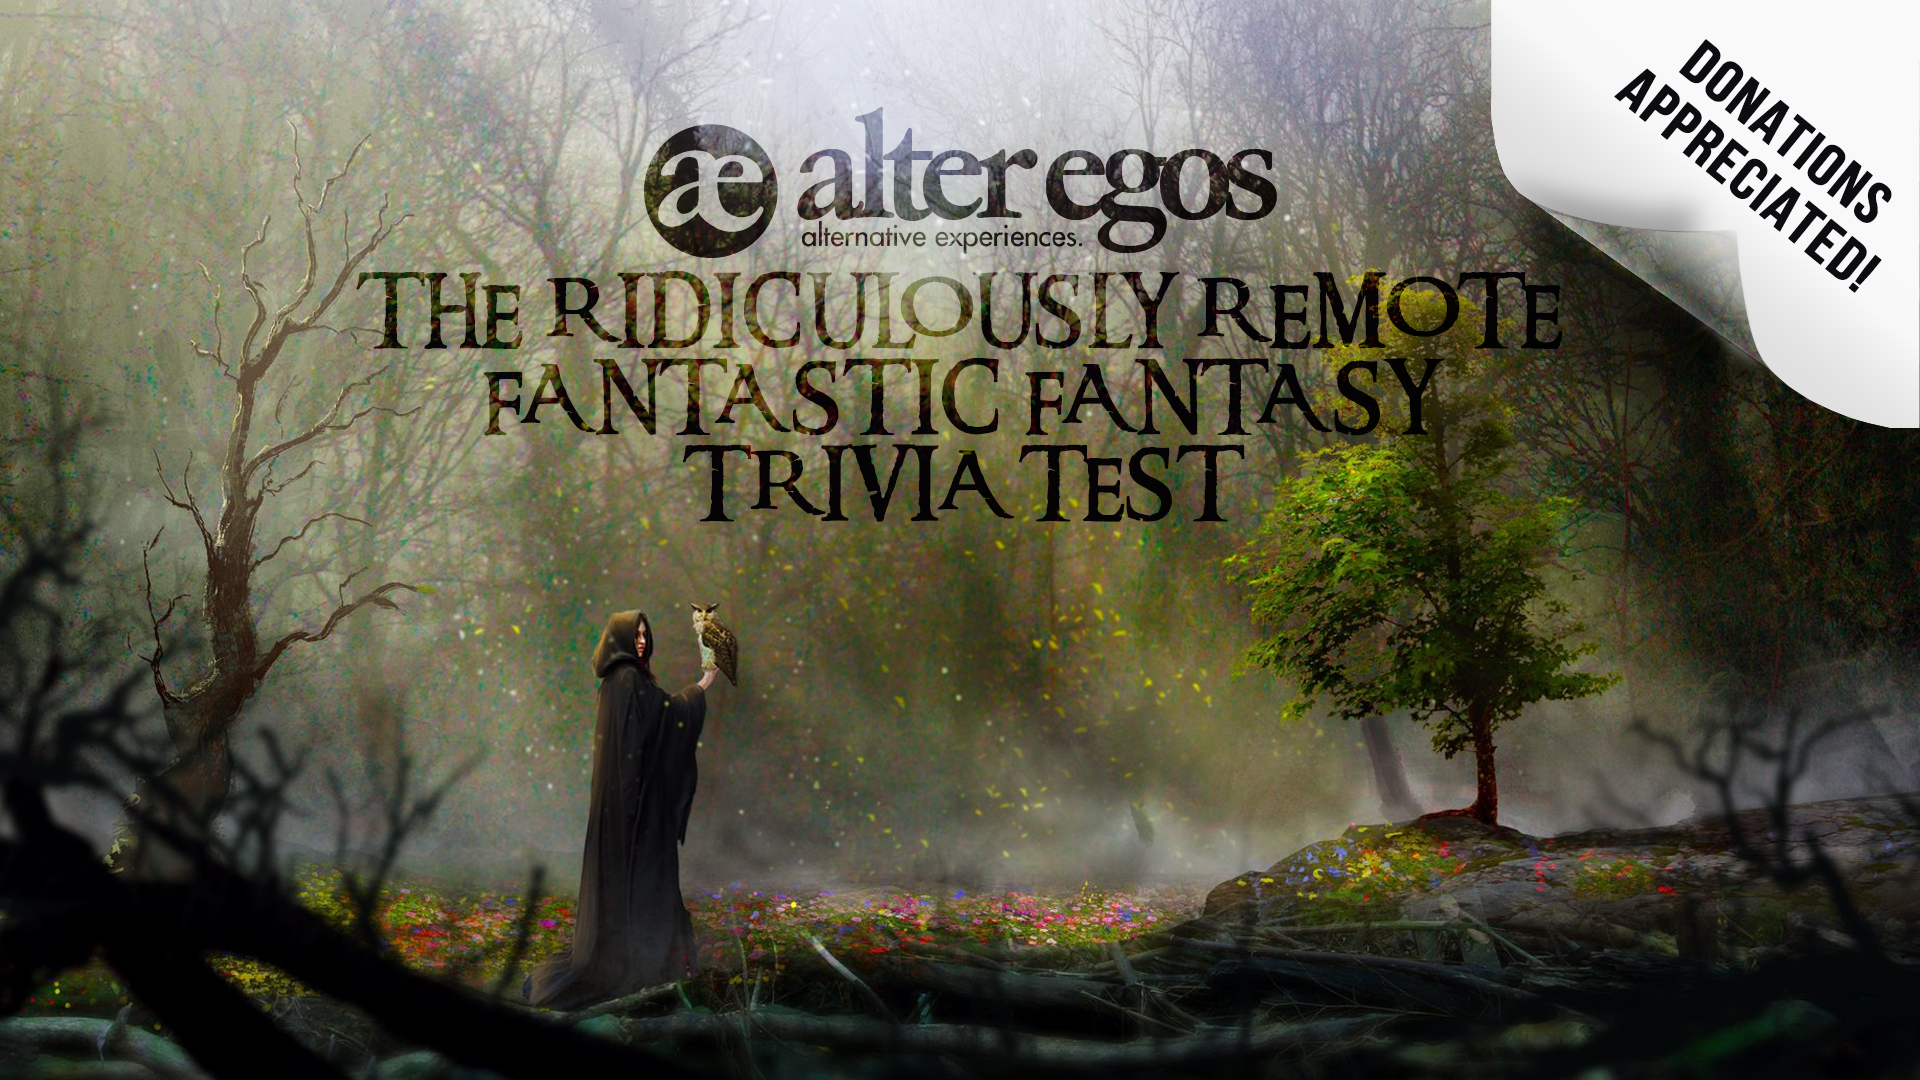 The Ridiculously Remote Fantastic Fantasy Trivia Test #3